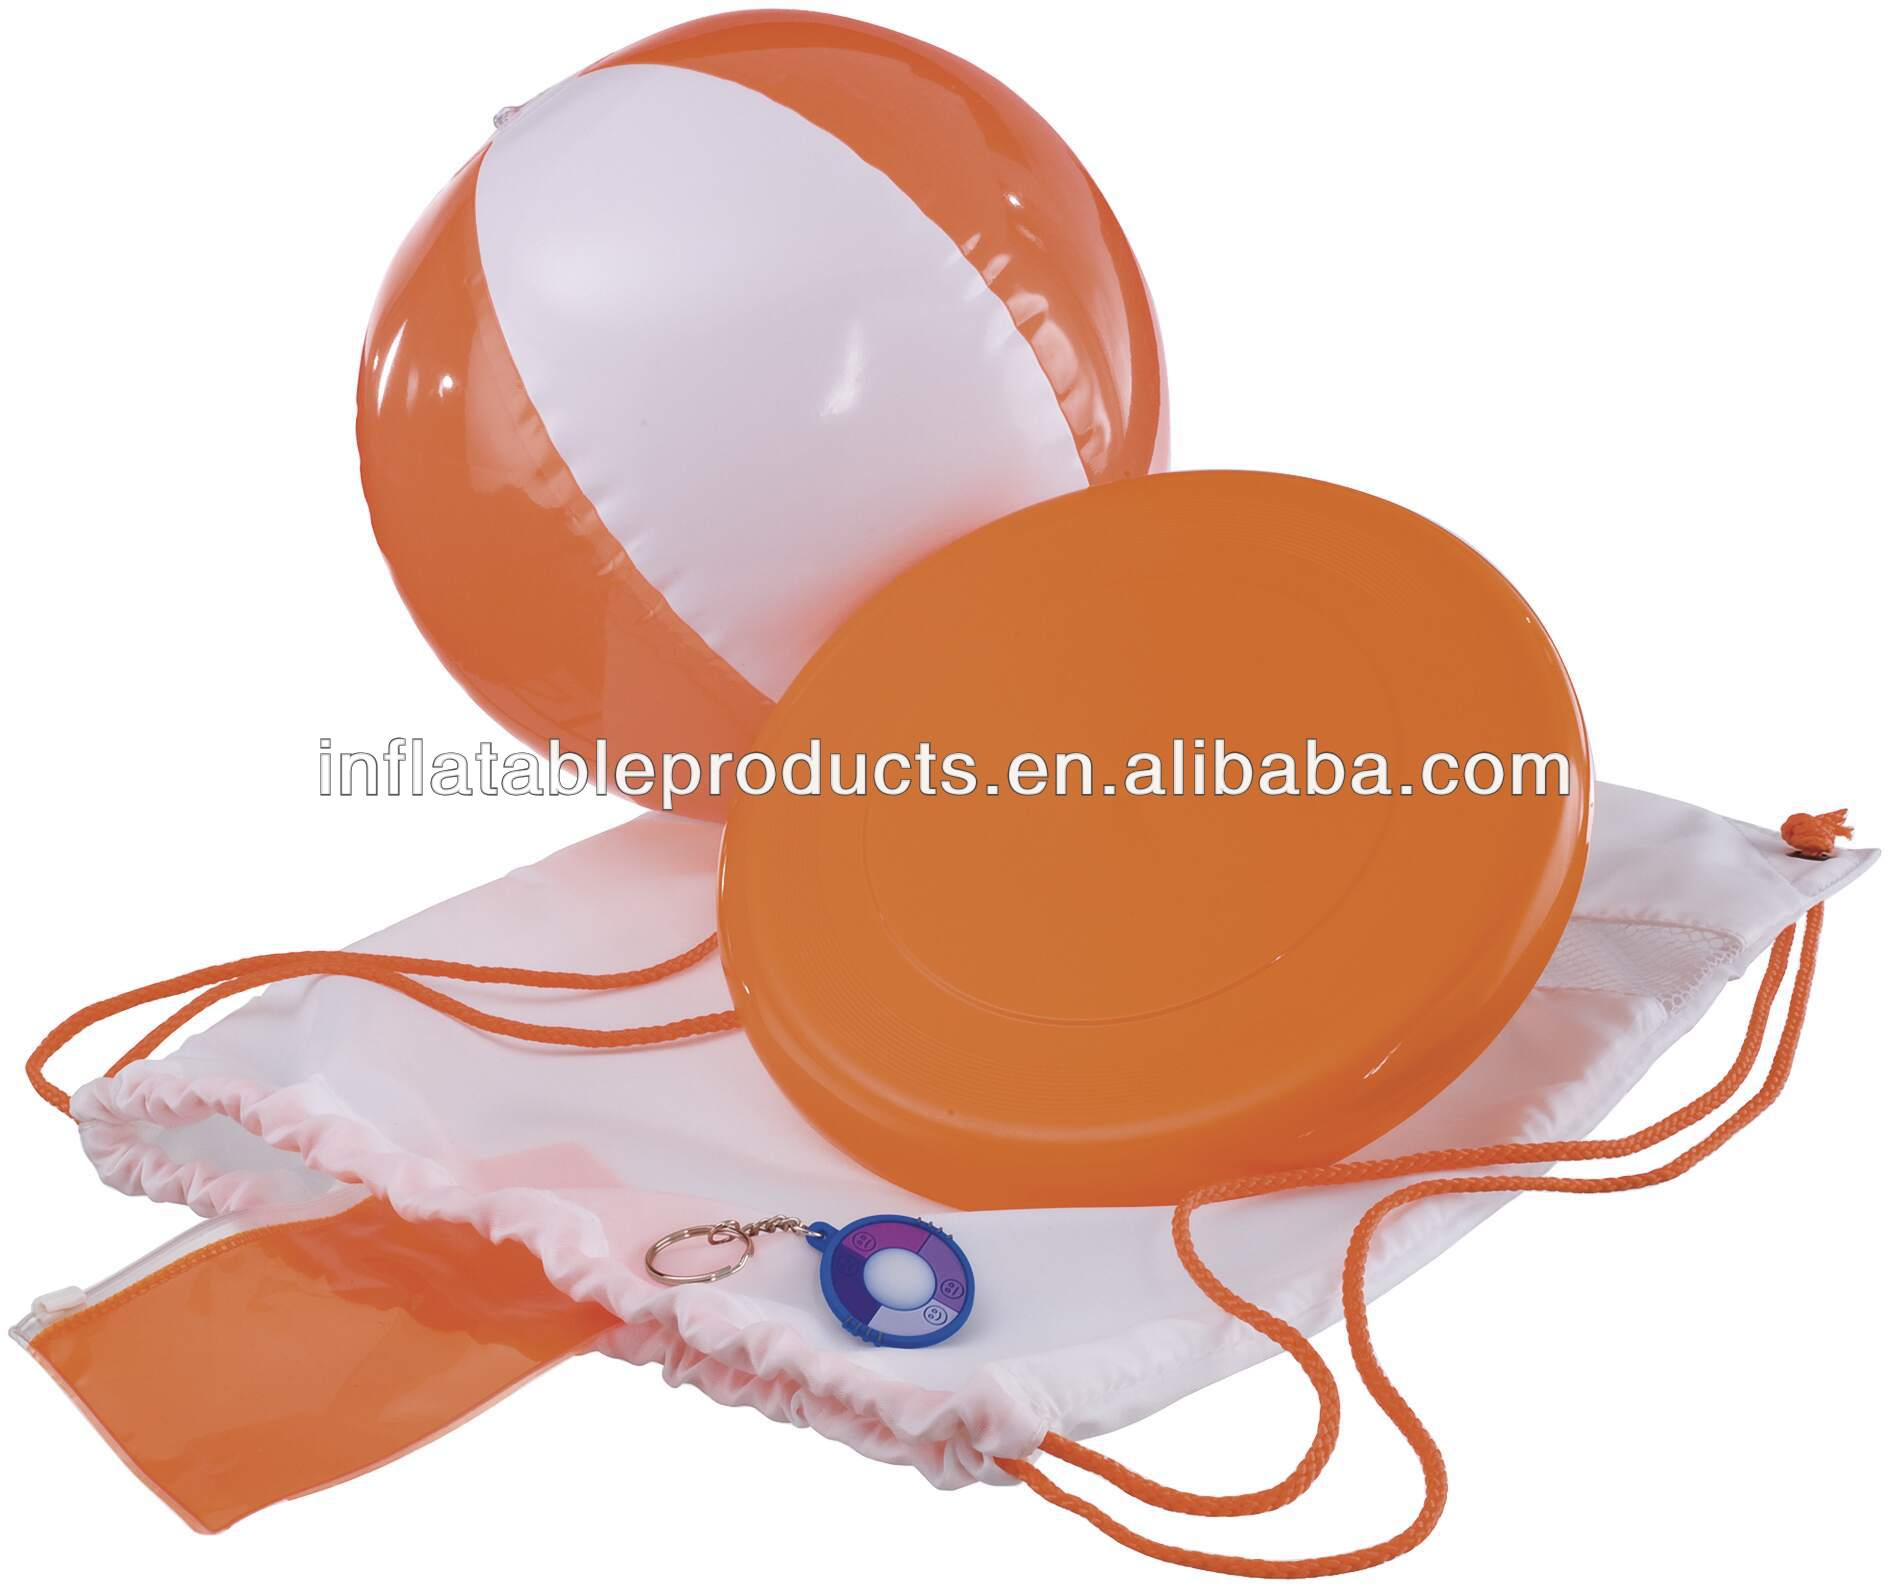 pvc inflatable beach ball sets